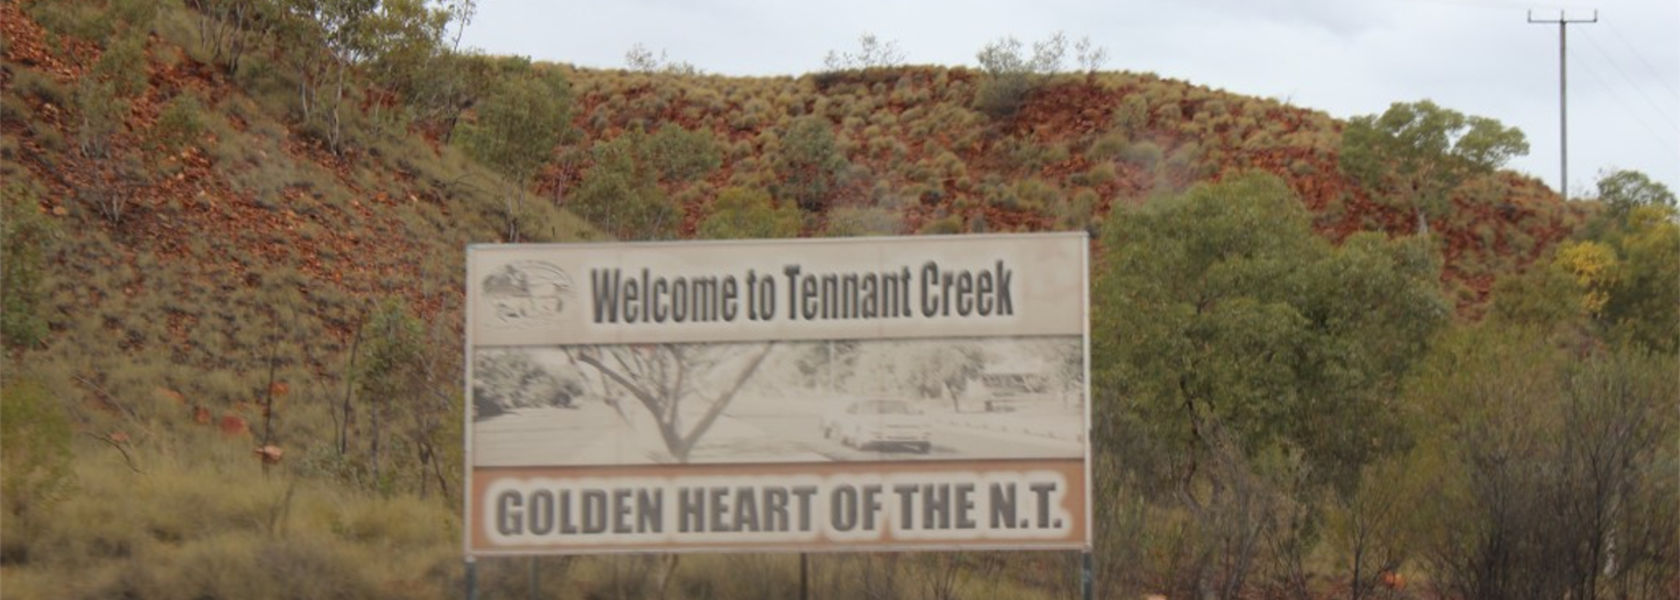 Tennant Creek processing hub to target stranded gold